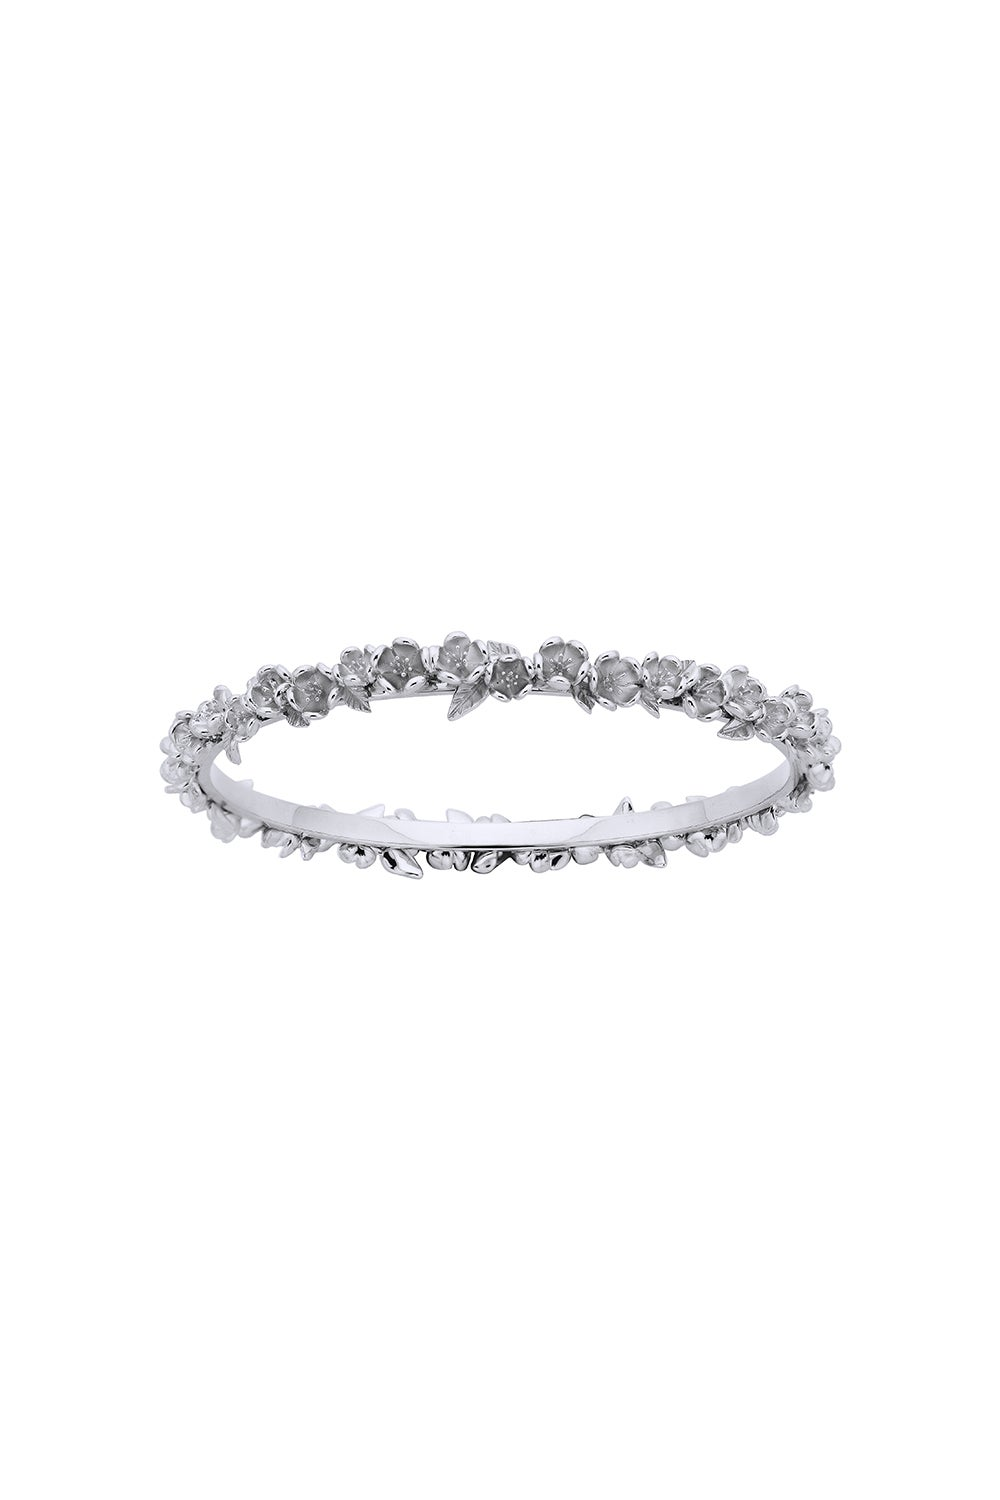 Wreath Bangle Silver 63mm